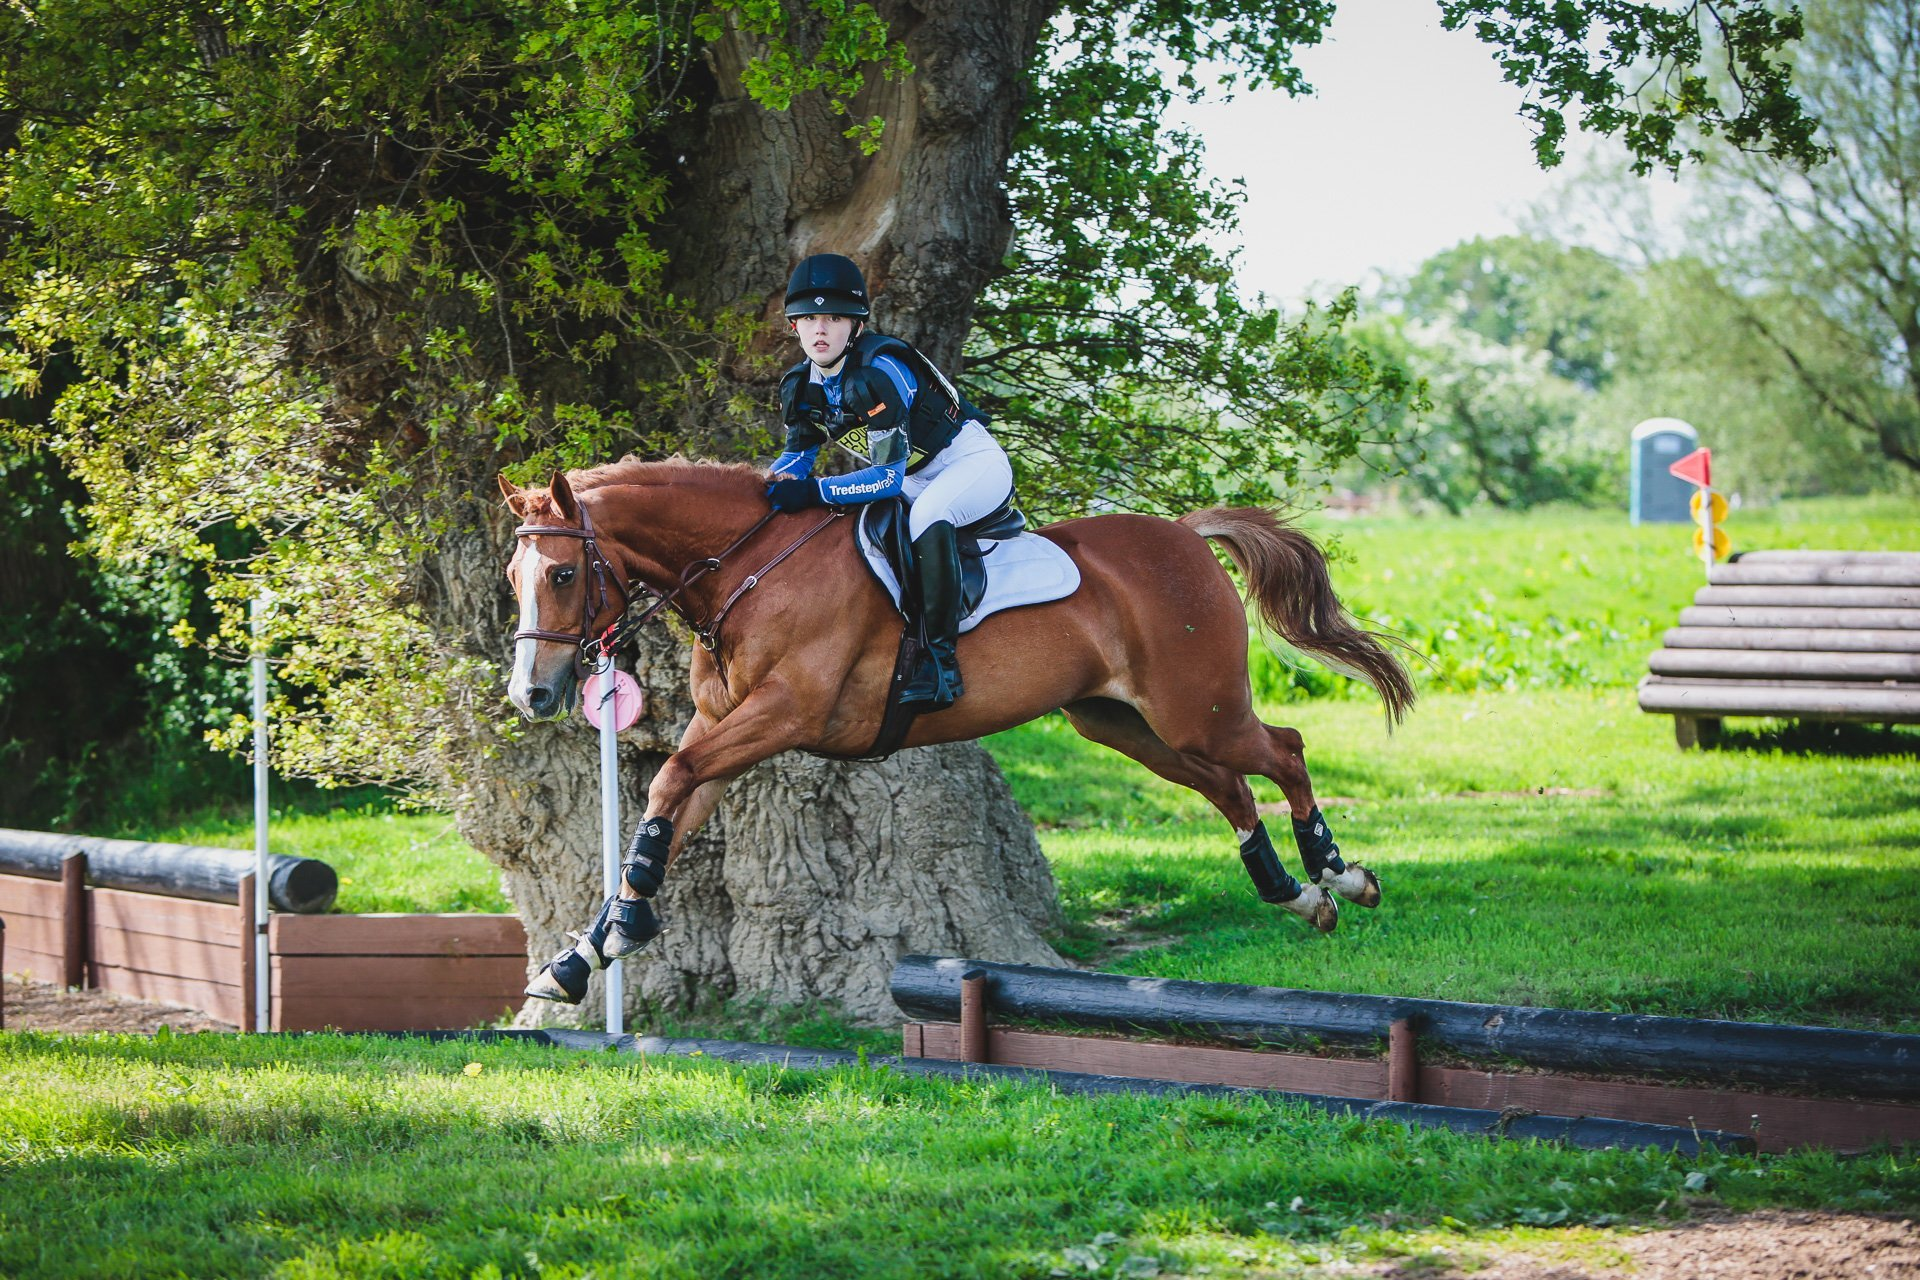 a b*spoke competition shoot at Llanymynech horse trials